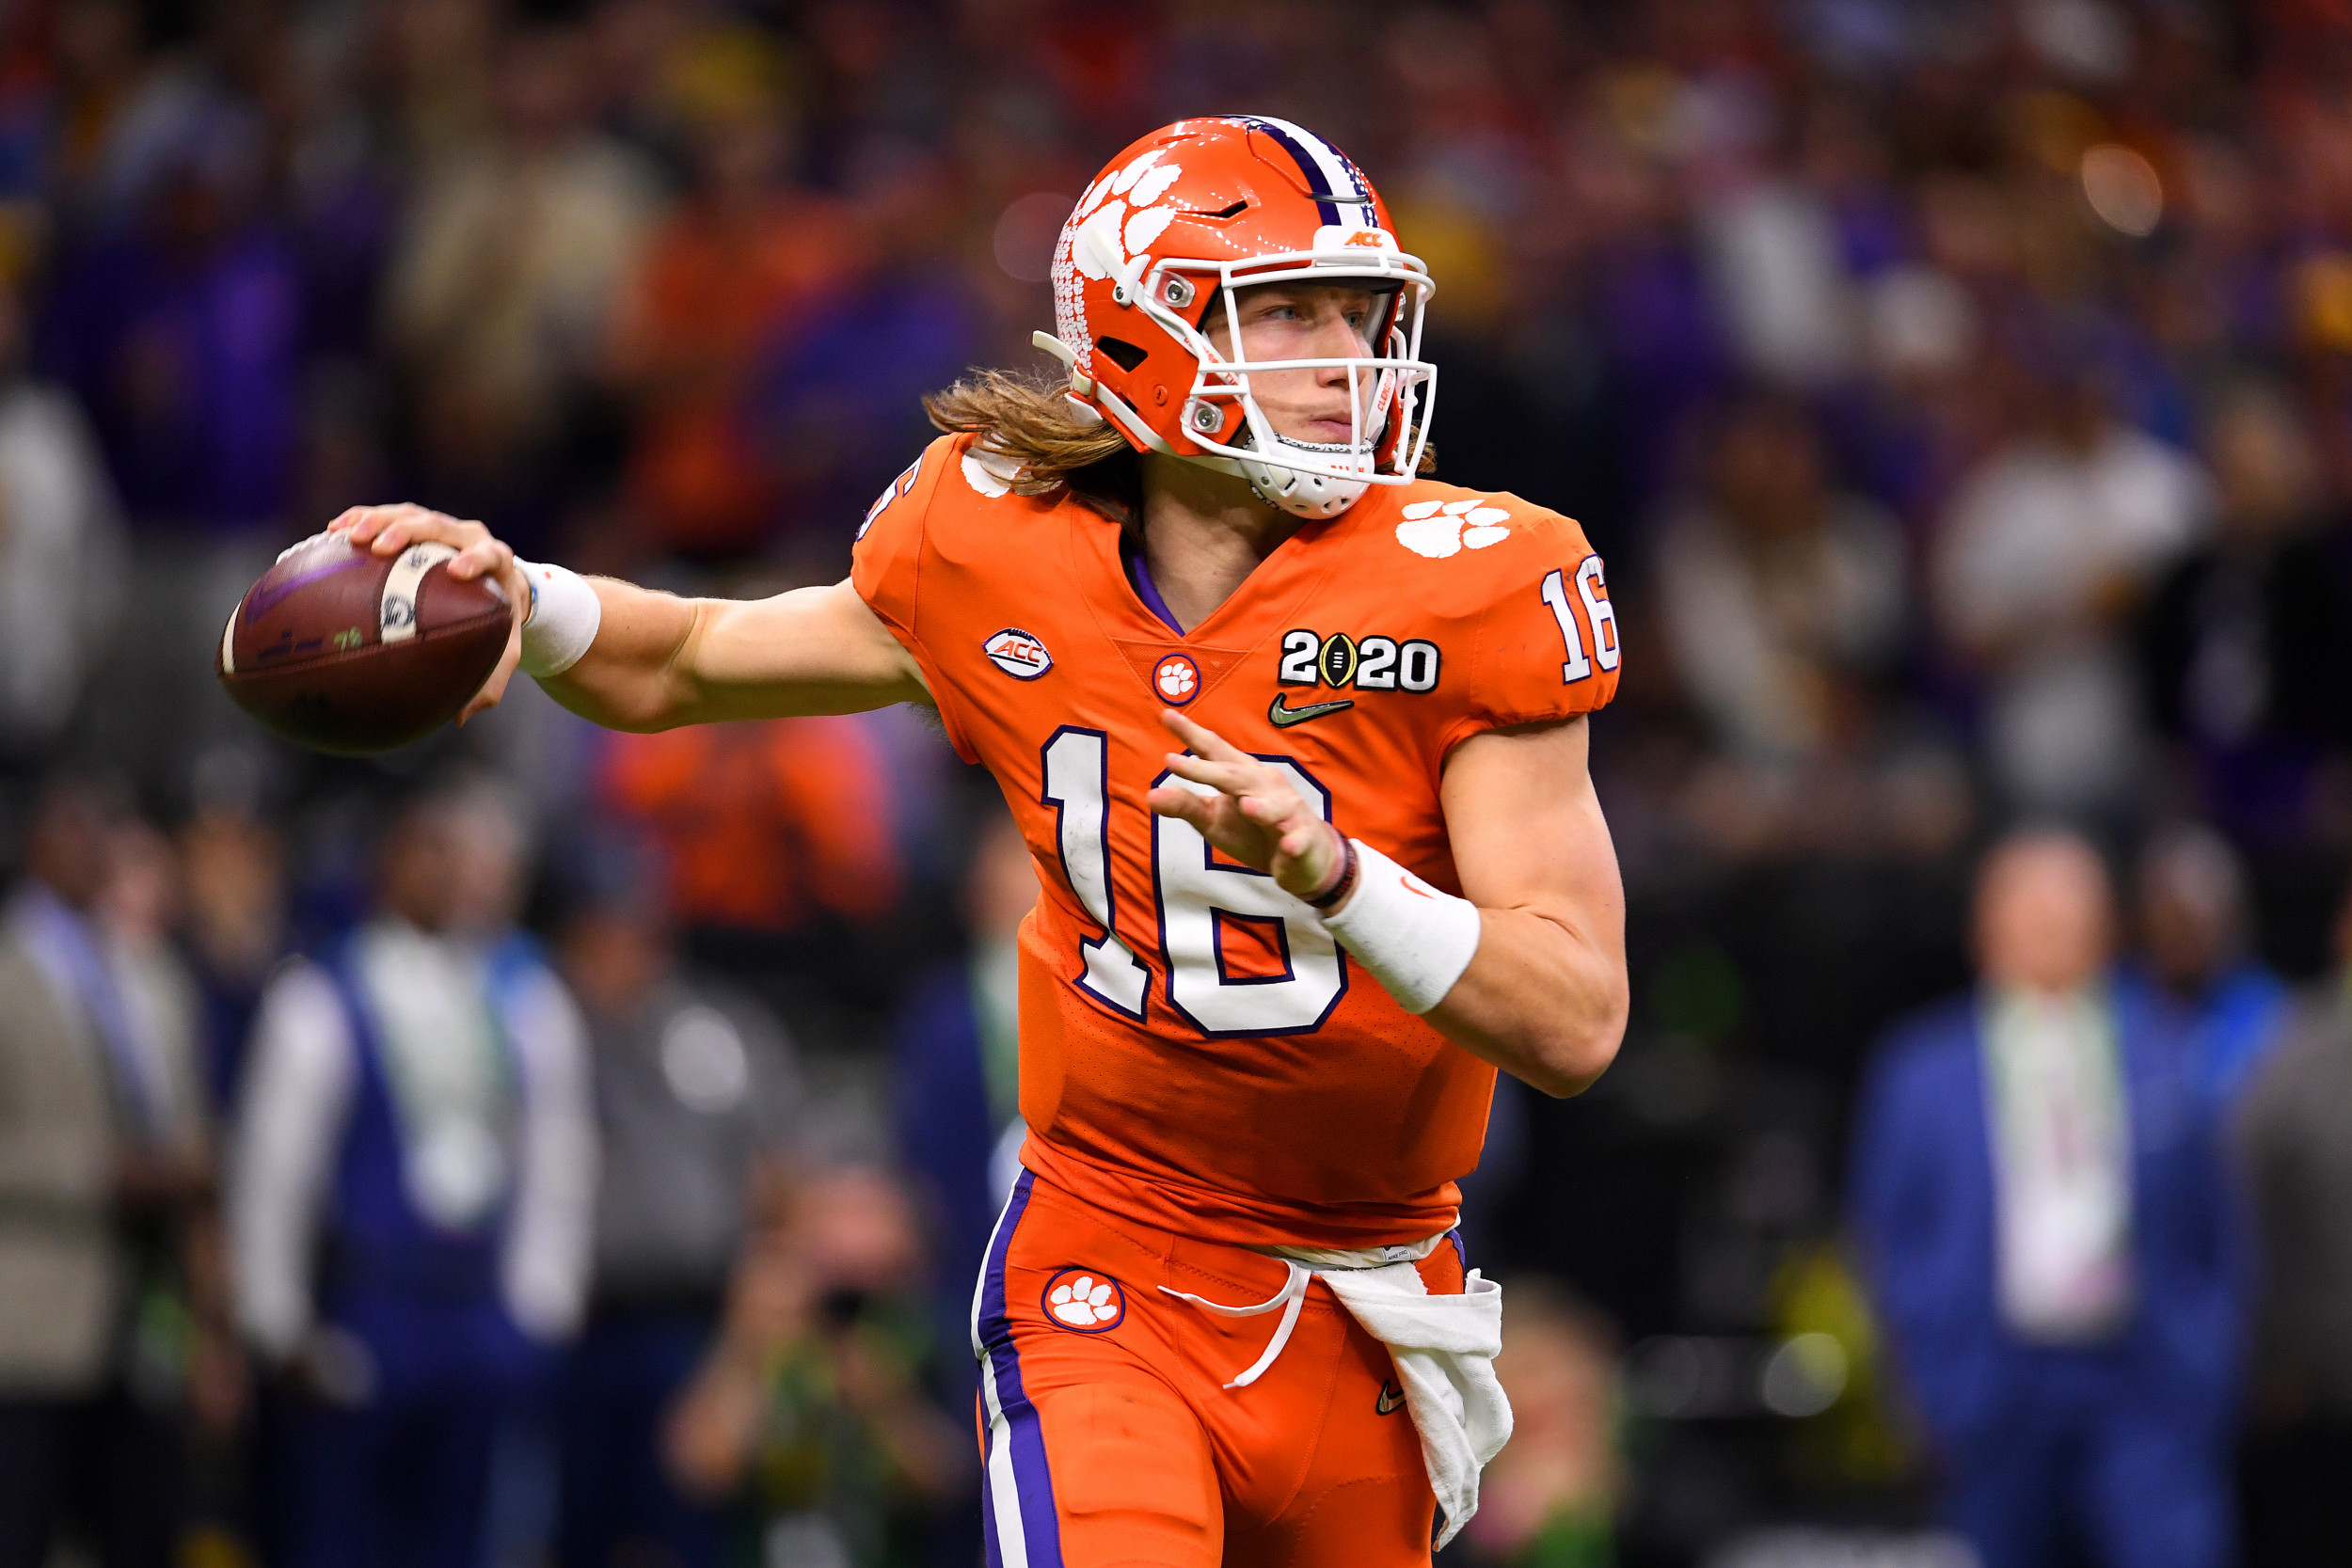 College Football Schedule How To Watch Clemson Vs The Citadel On Tv And Online